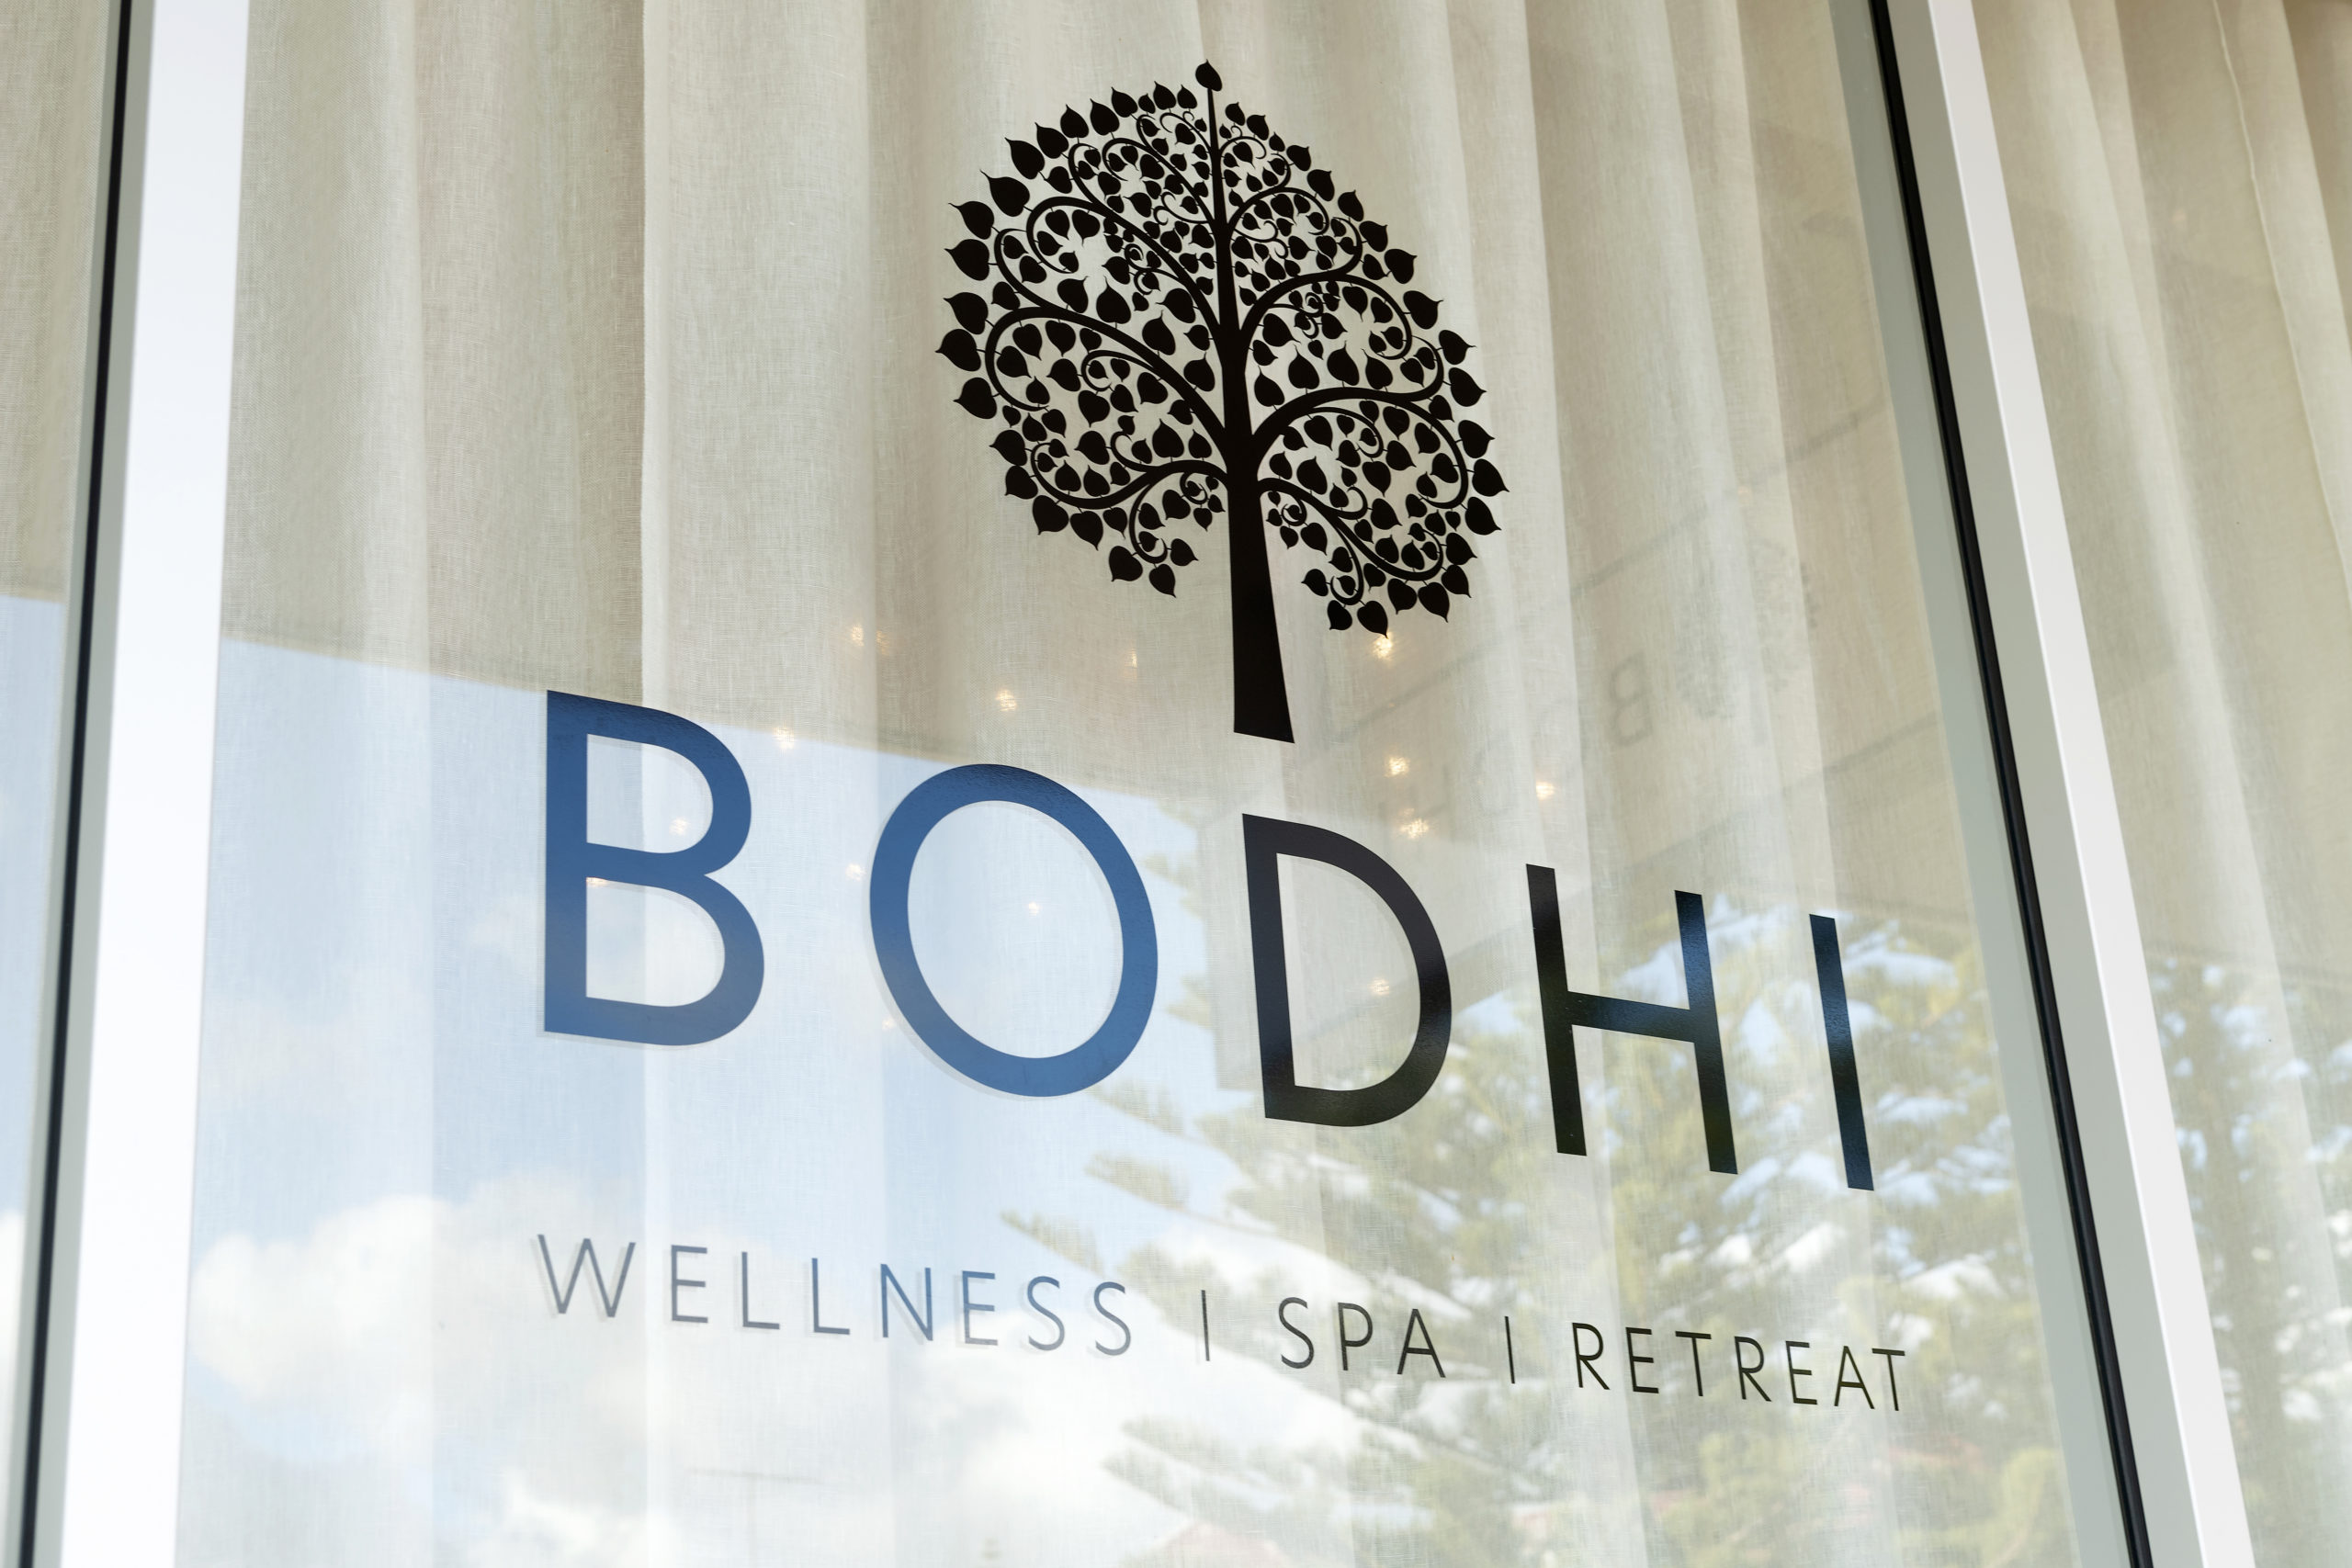 Image of BODHI logo on window with white curtains behind